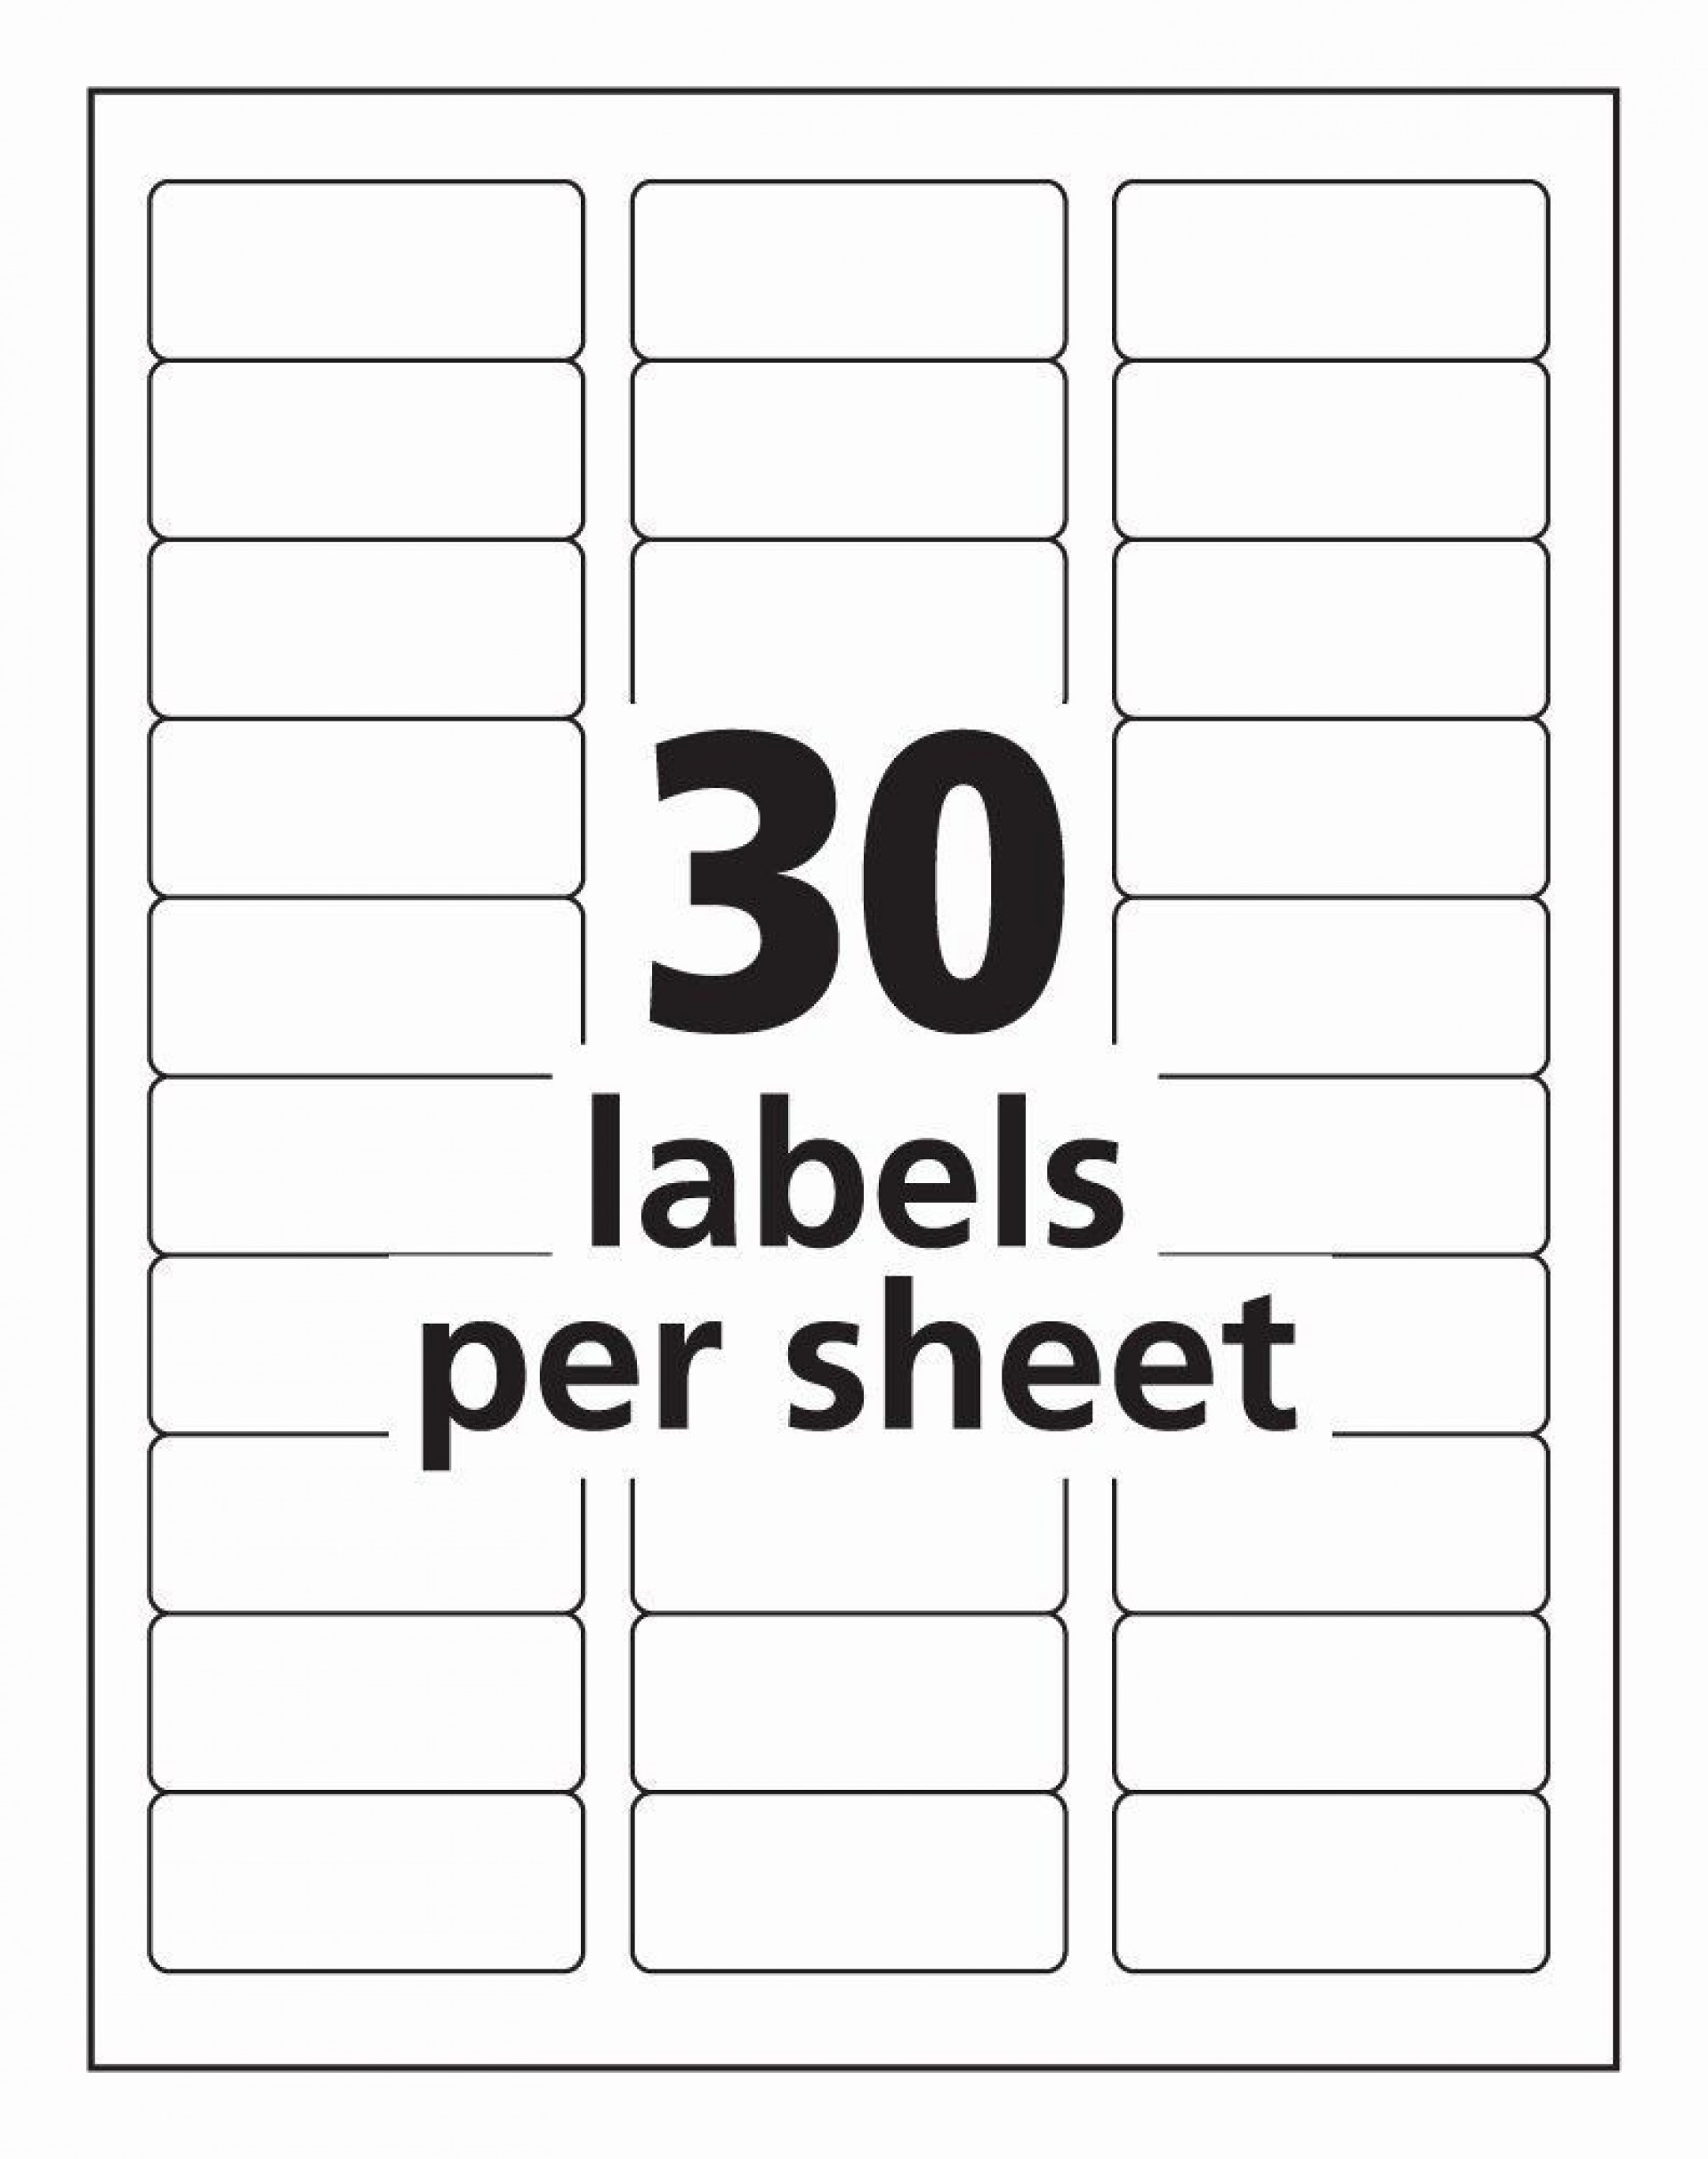 003 Staggering Label Template For Word High Def  Avery 14 Per Sheet Free 21 A41920